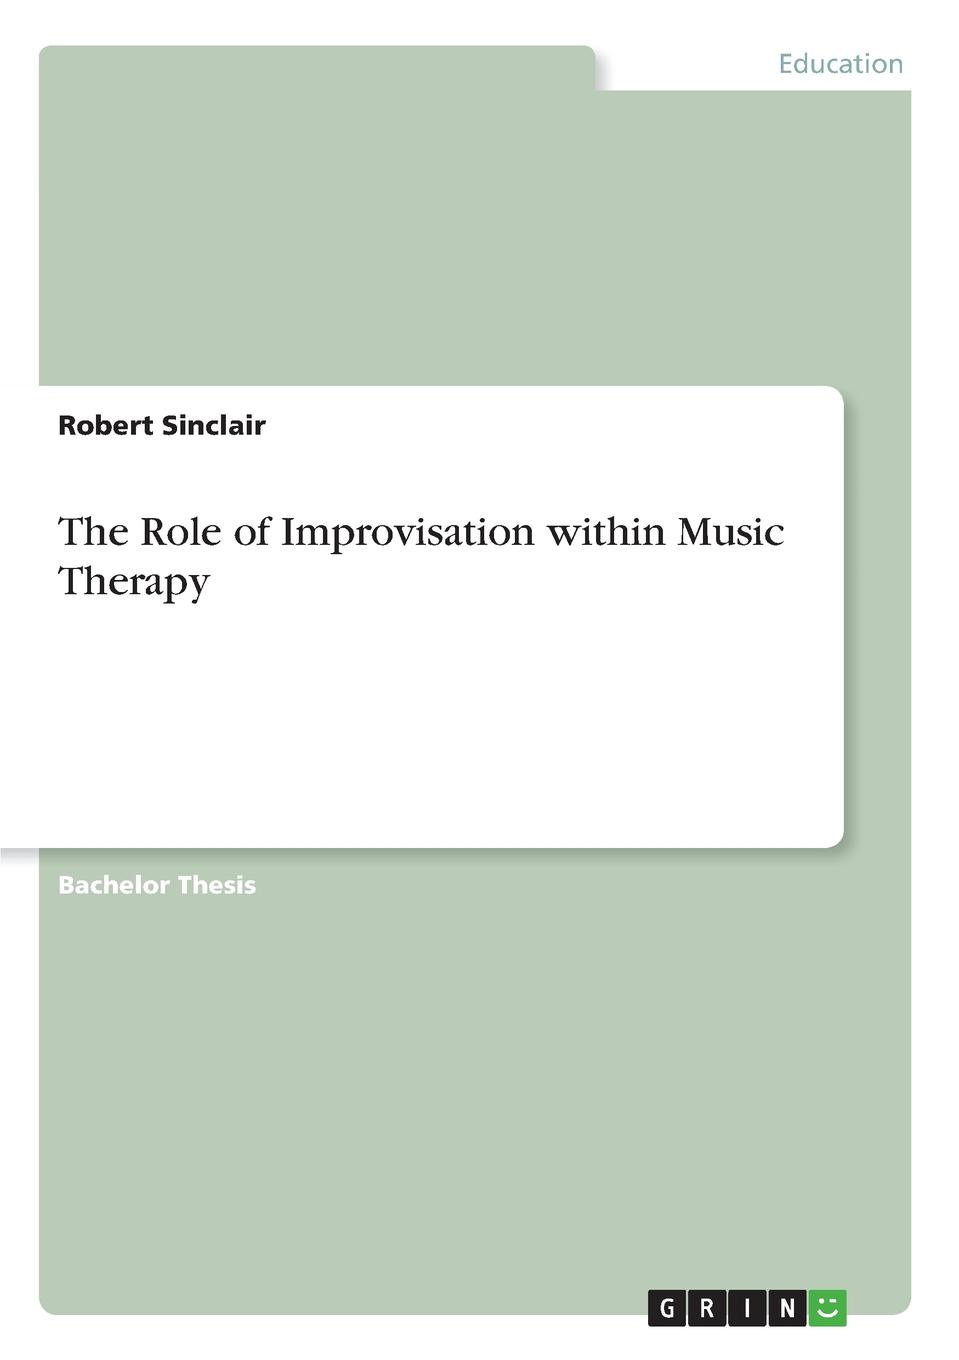 Robert Sinclair The Role of Improvisation within Music Therapy derek bailey and the story of free improvisation